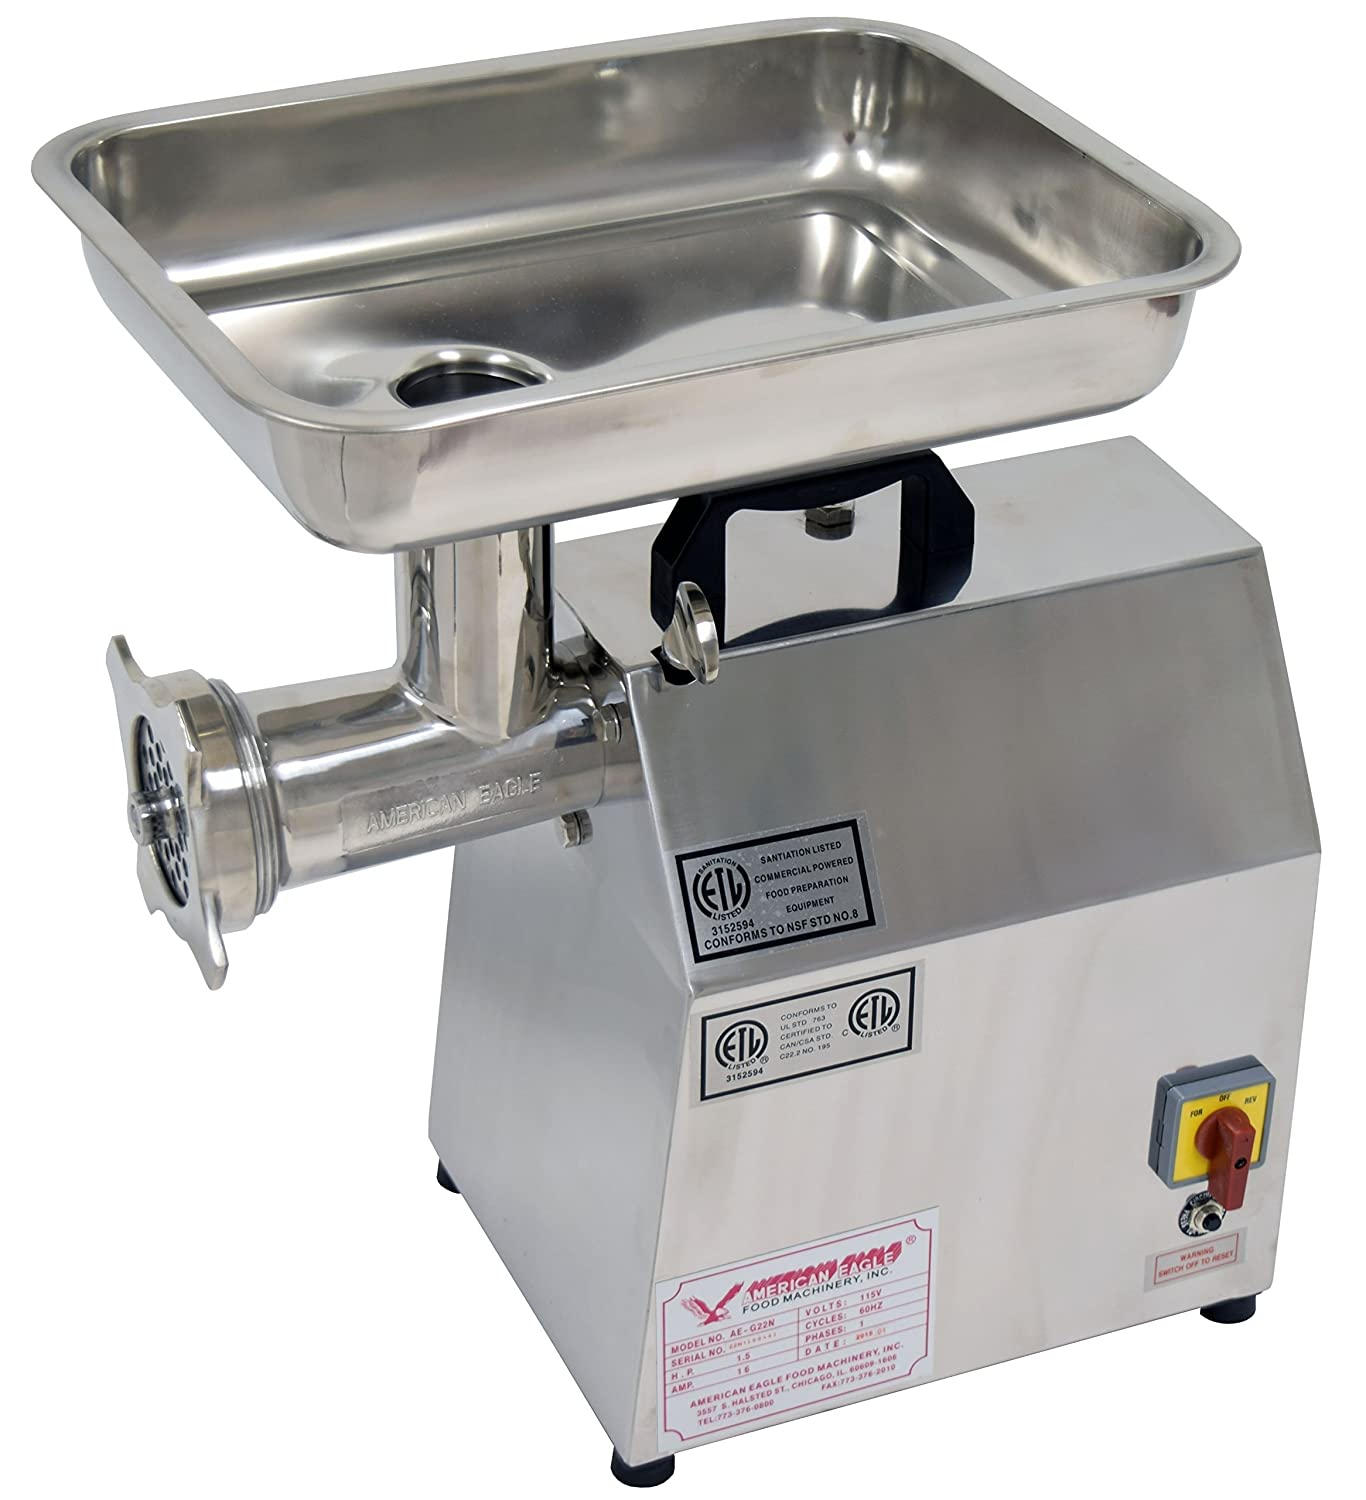 Image of Meat Grinders American Eagle AE-G22N Food Machinery 1.5HP #22 Commercial Stainless Steel Meat Grinder